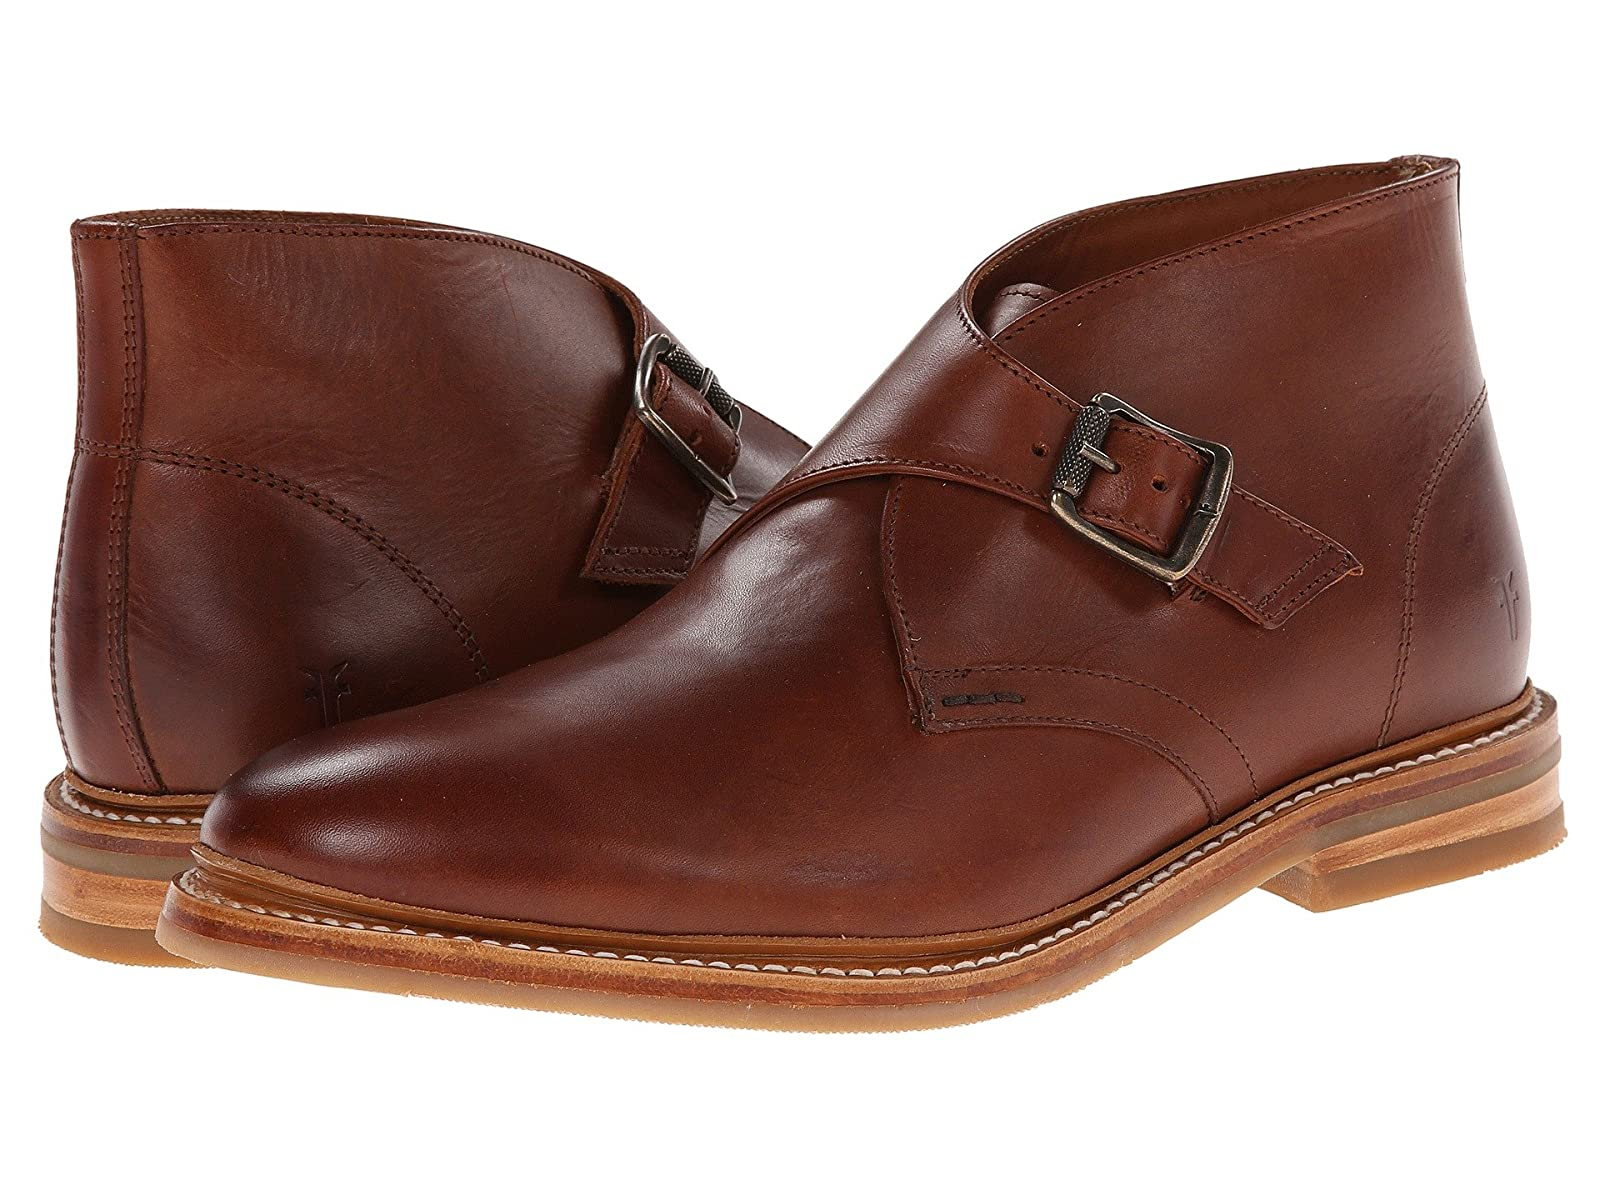 Frye William Monk ChukkaCheap and distinctive eye-catching shoes